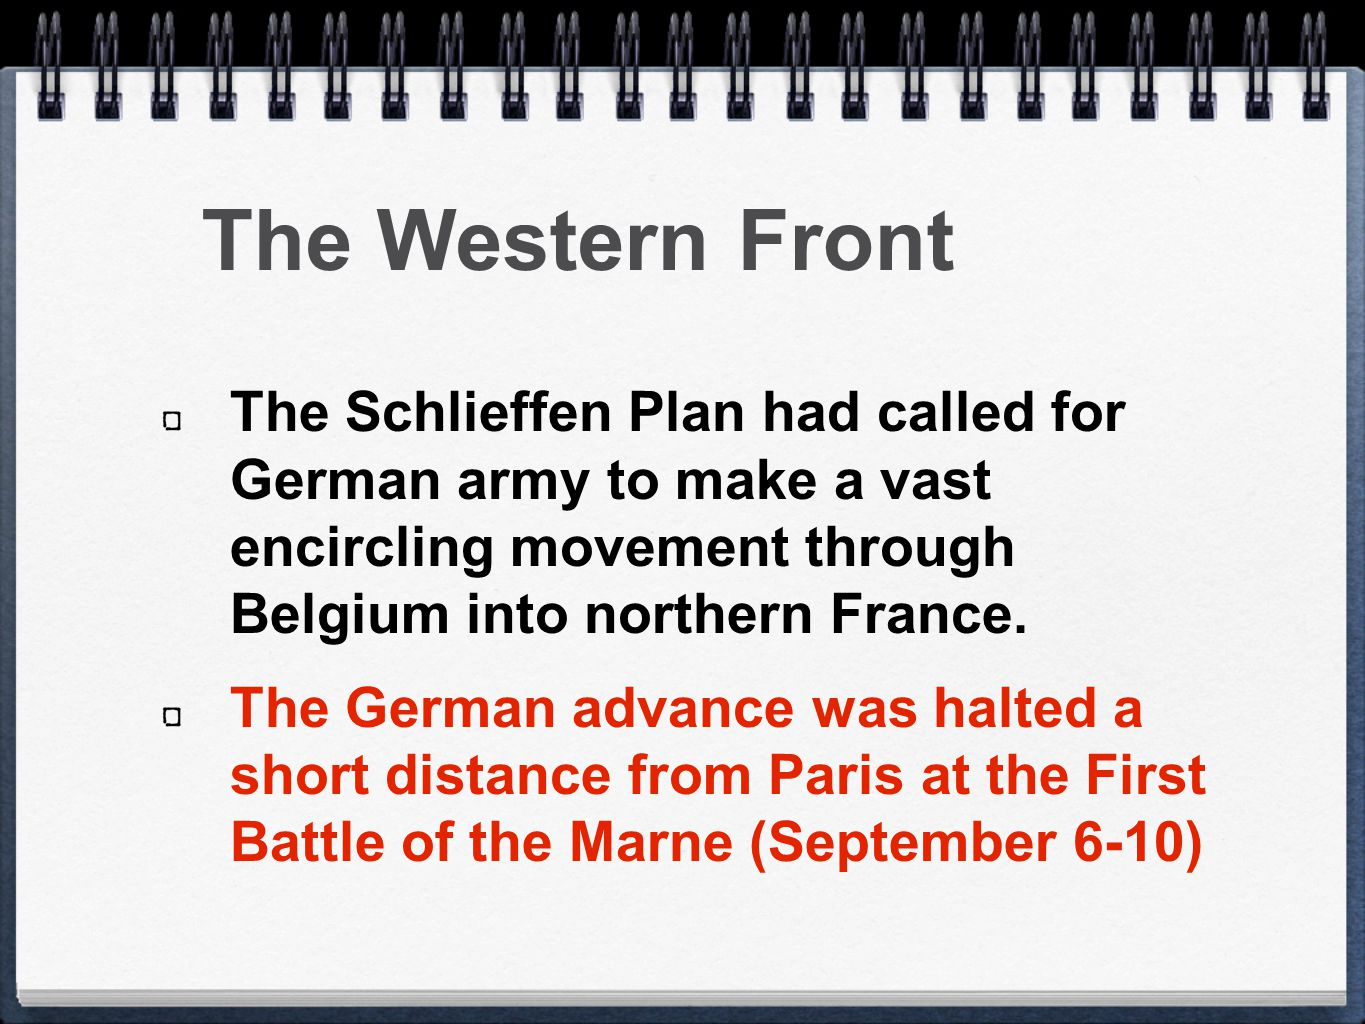 The Western Front The Schlieffen Plan had called for German army to make a vast encircling movement through Belgium into northern France.